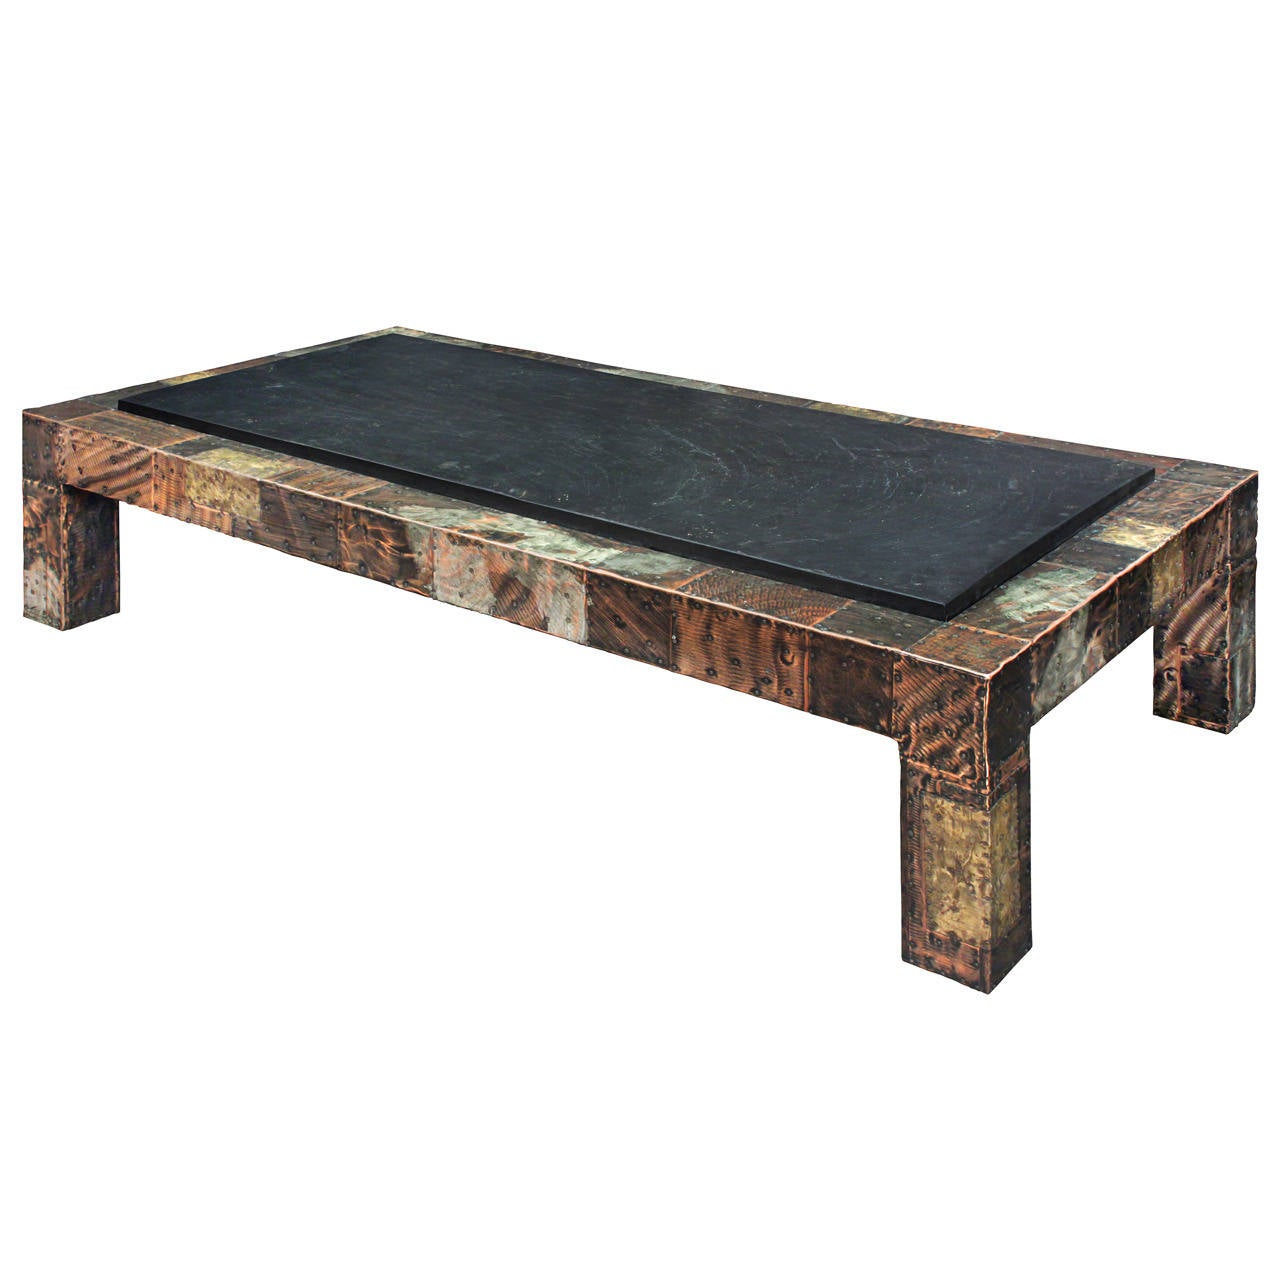 Large Patchwork Coffee Table With Thick Slate Top By Paul Evans At 1stdibs